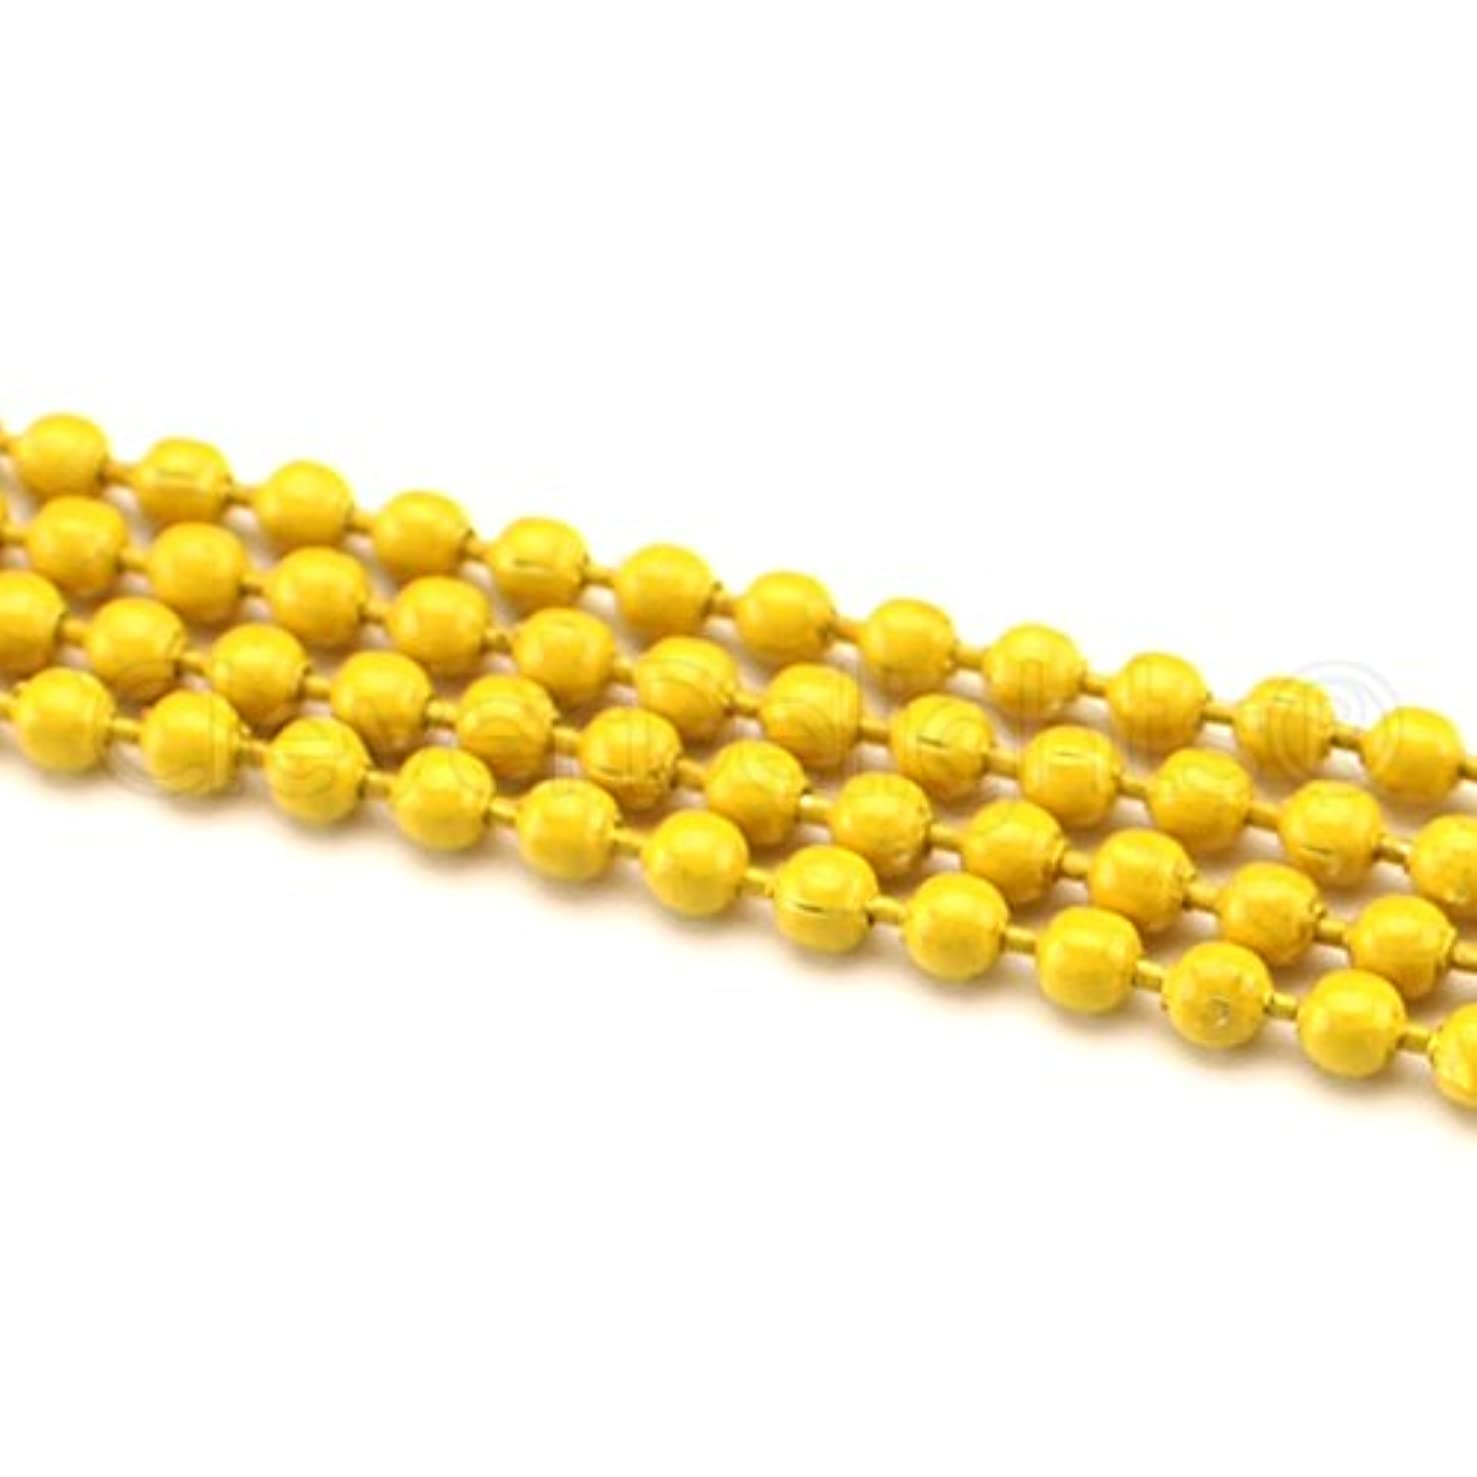 20 CleverDelights Ball Chain Necklaces - 28